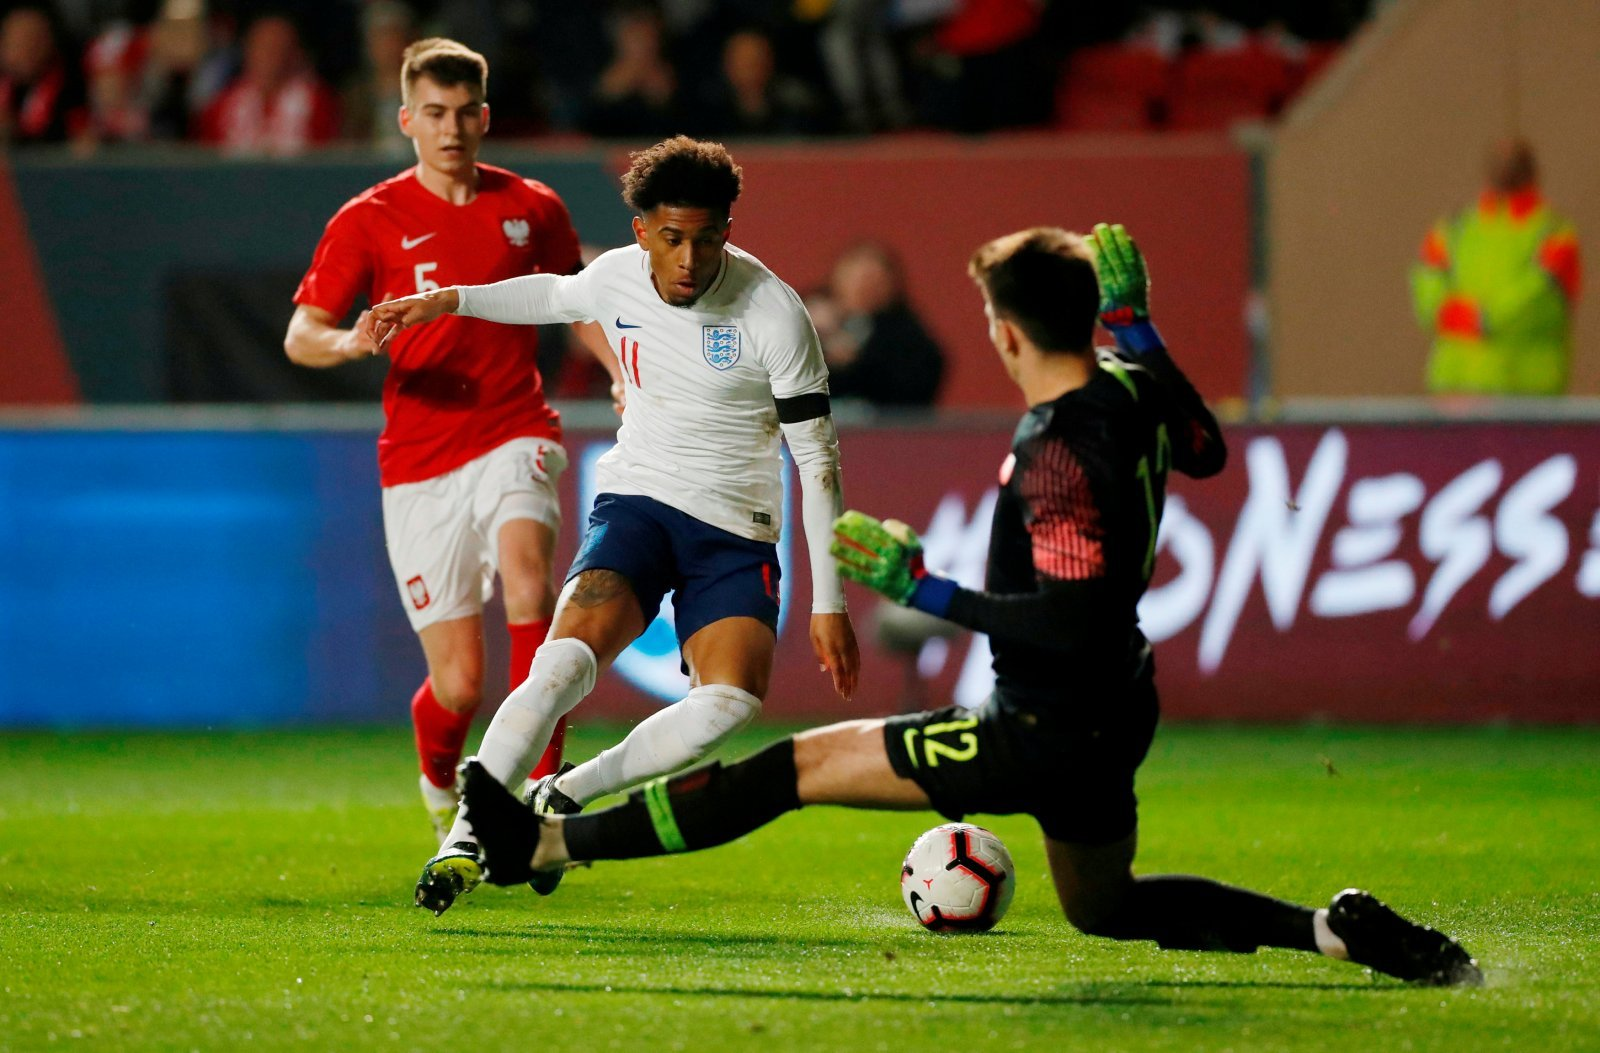 Arsenal: England U-21 performance shows Reiss Nelson is ready for Gunners first-team